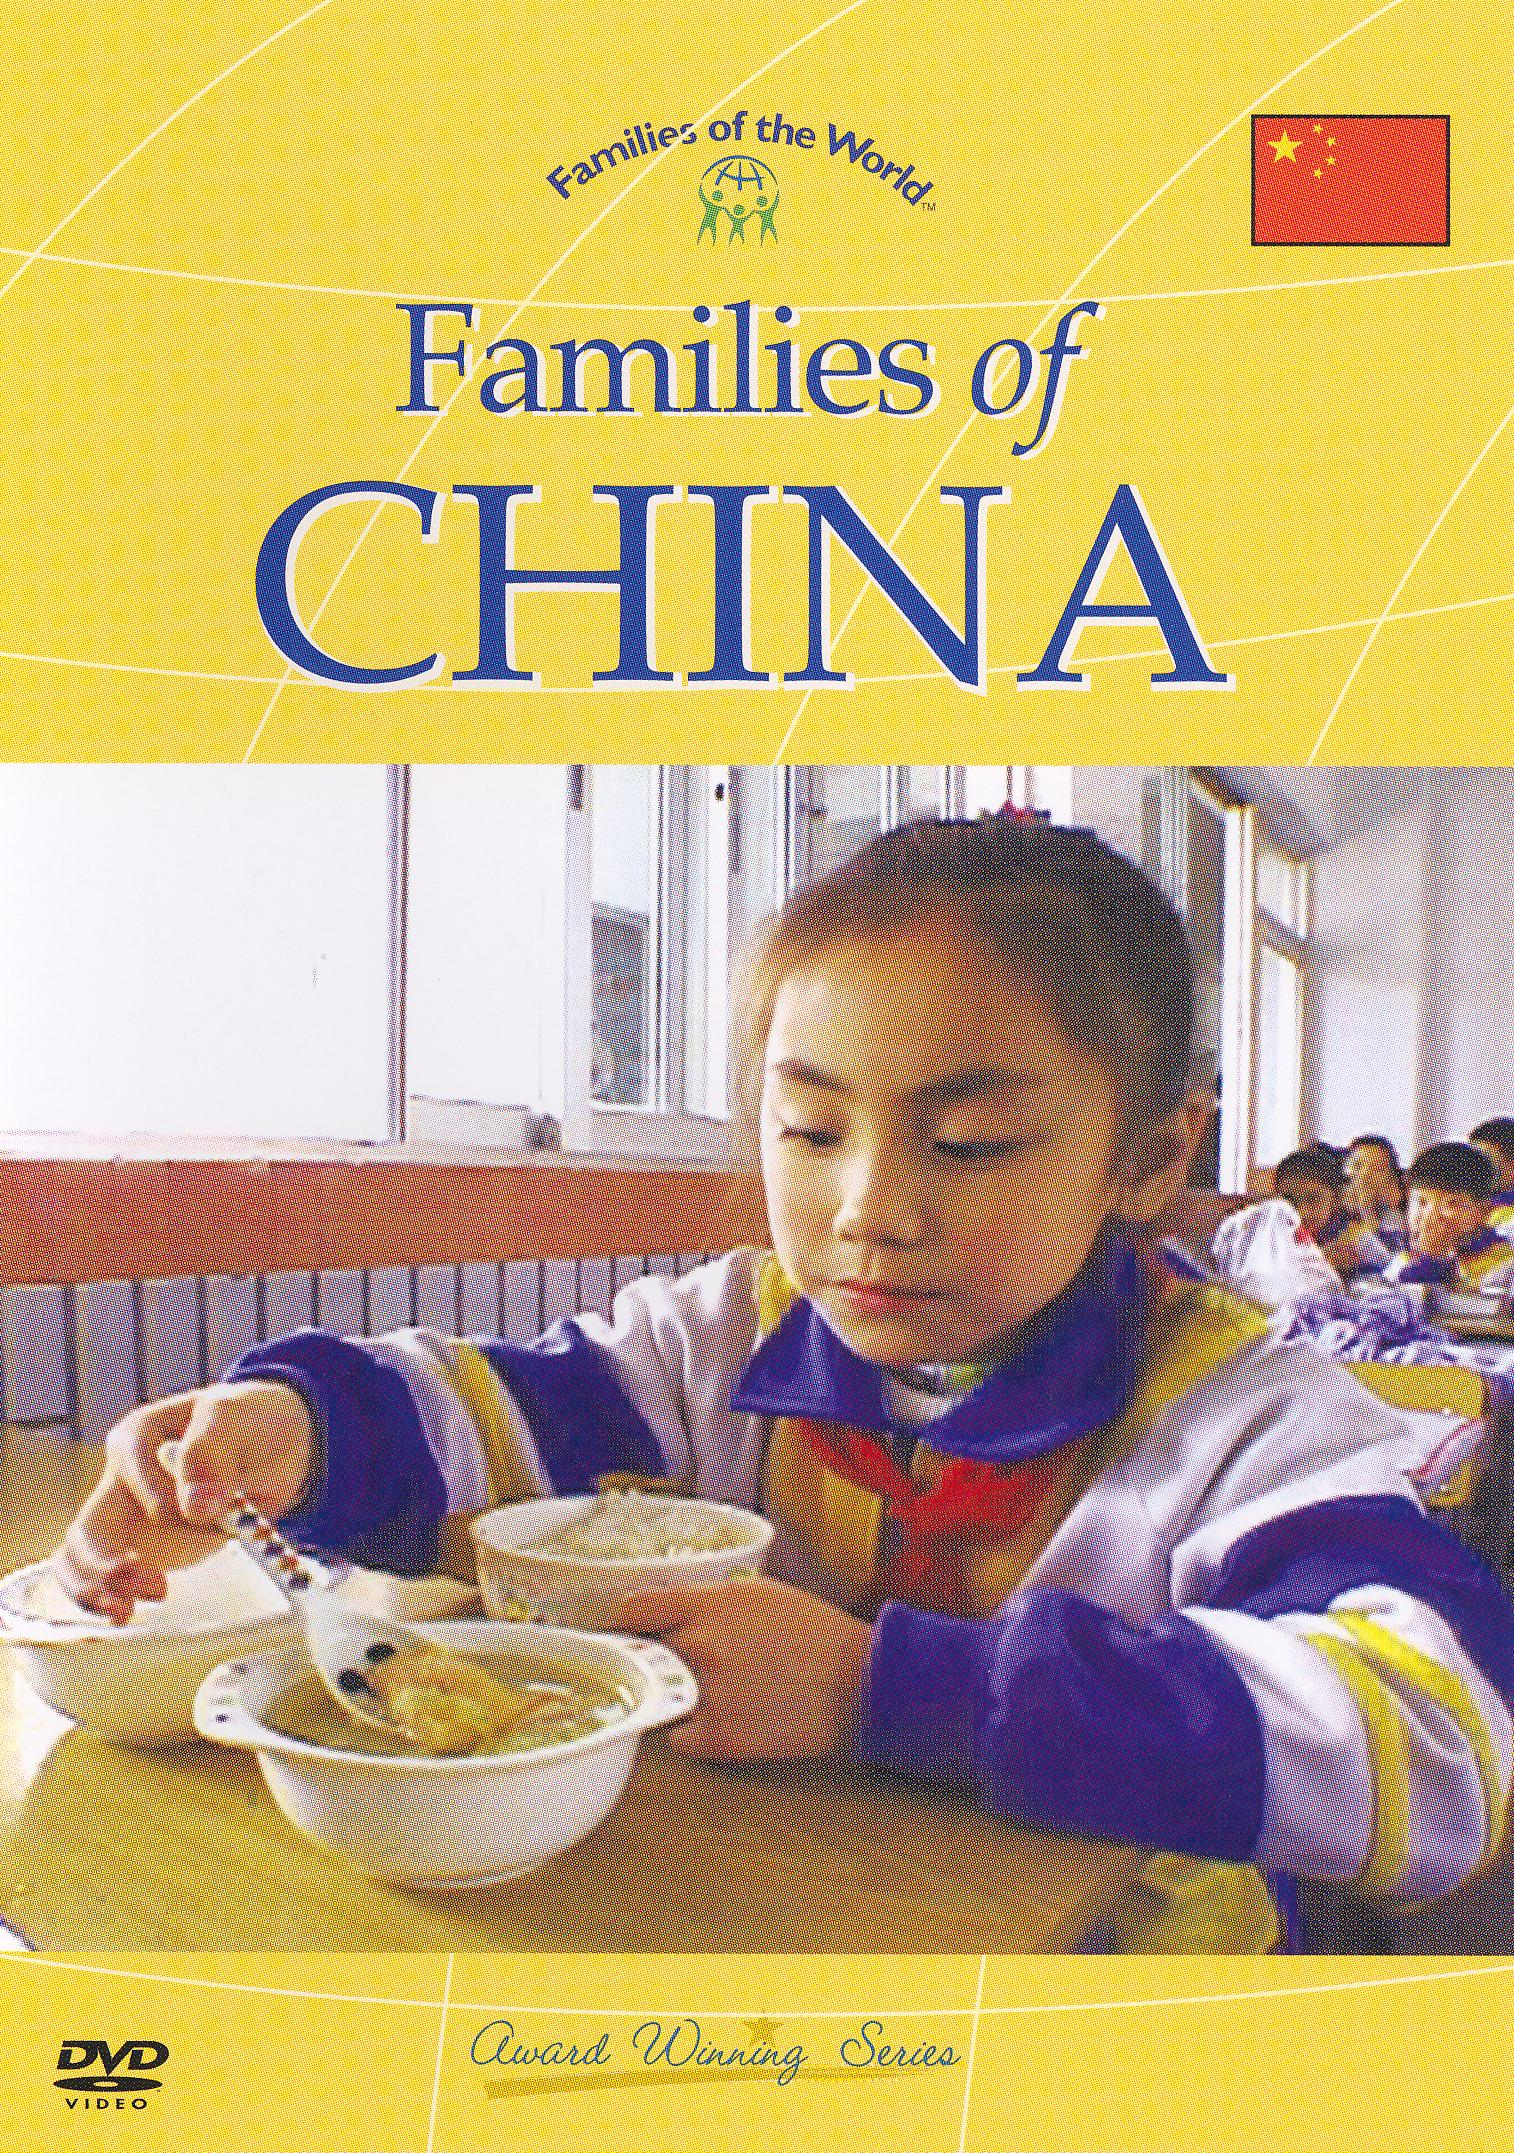 Families of the World: Families of China